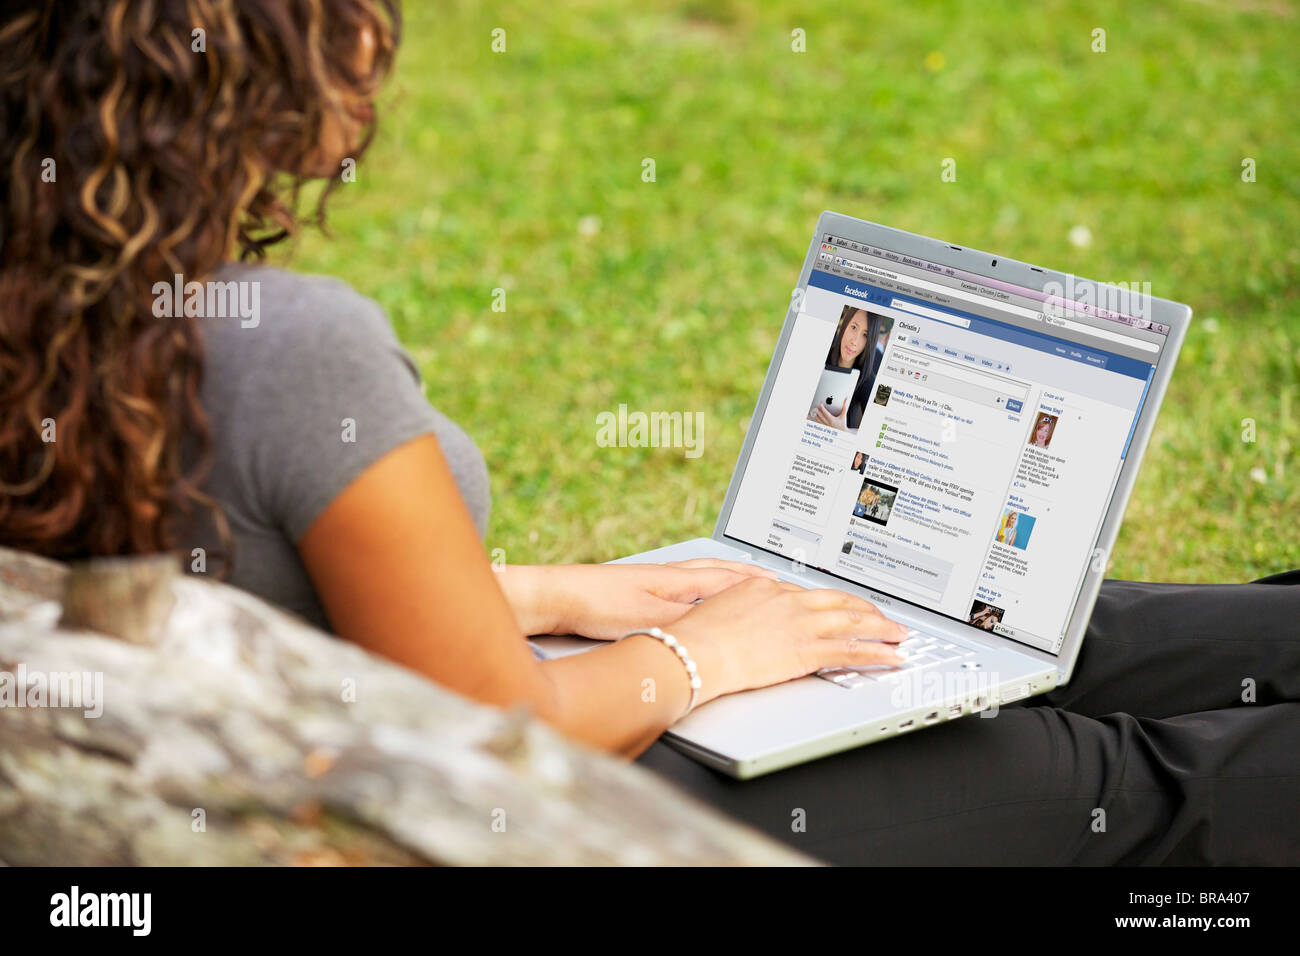 Young woman checking Facebook page online on a laptop alone at the park - Stock Image